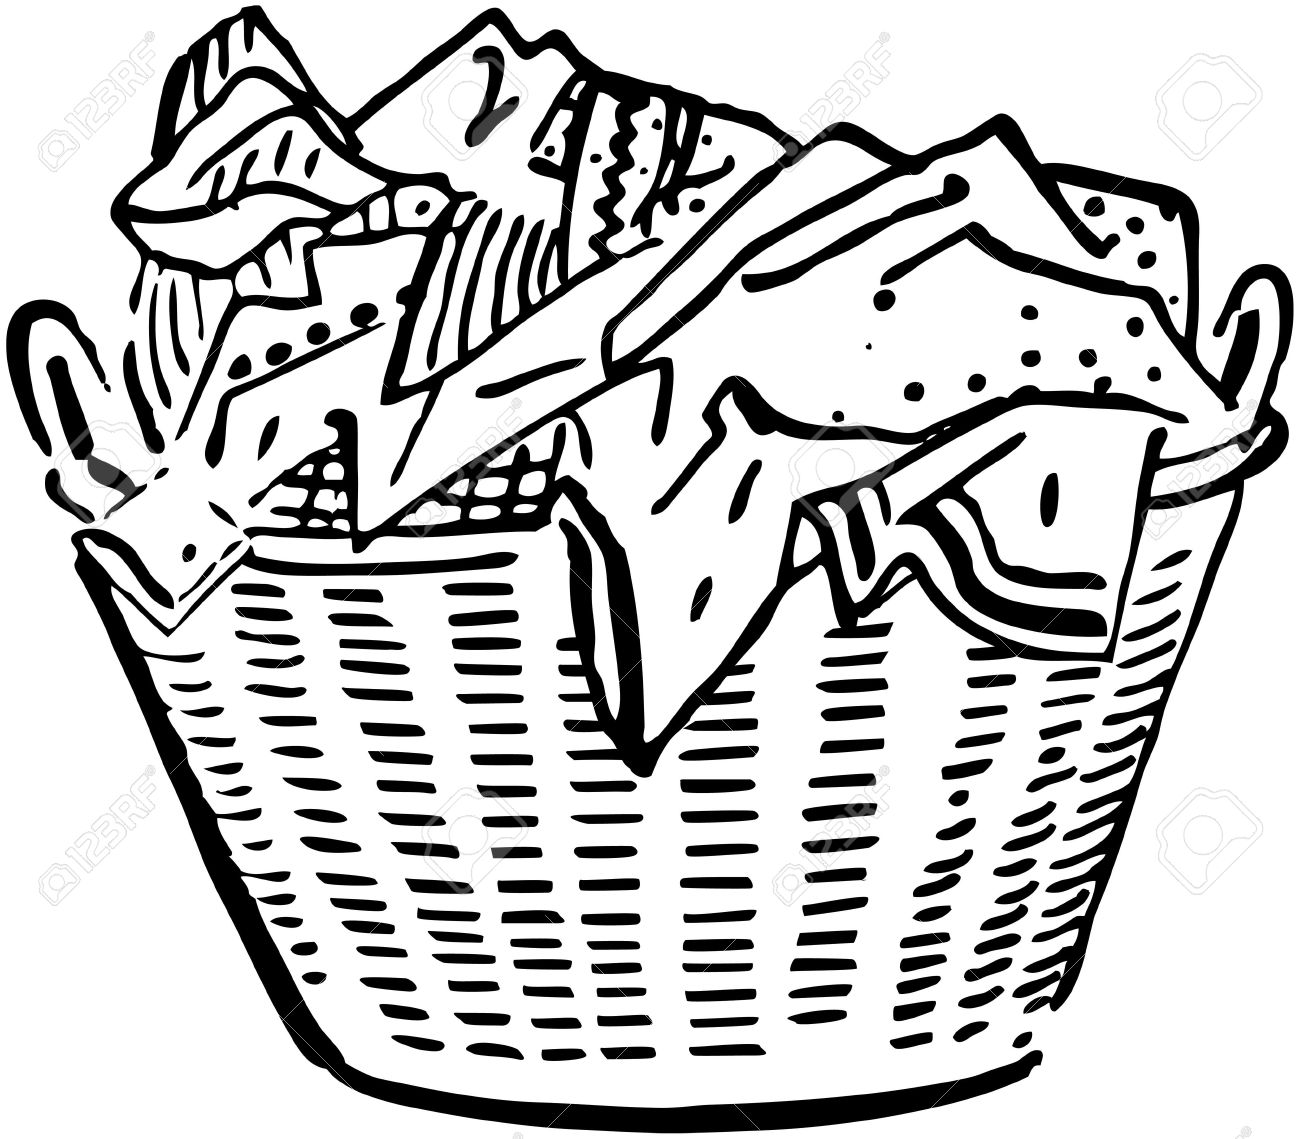 Dirty clothes clipart black and white 2 » Clipart Station.